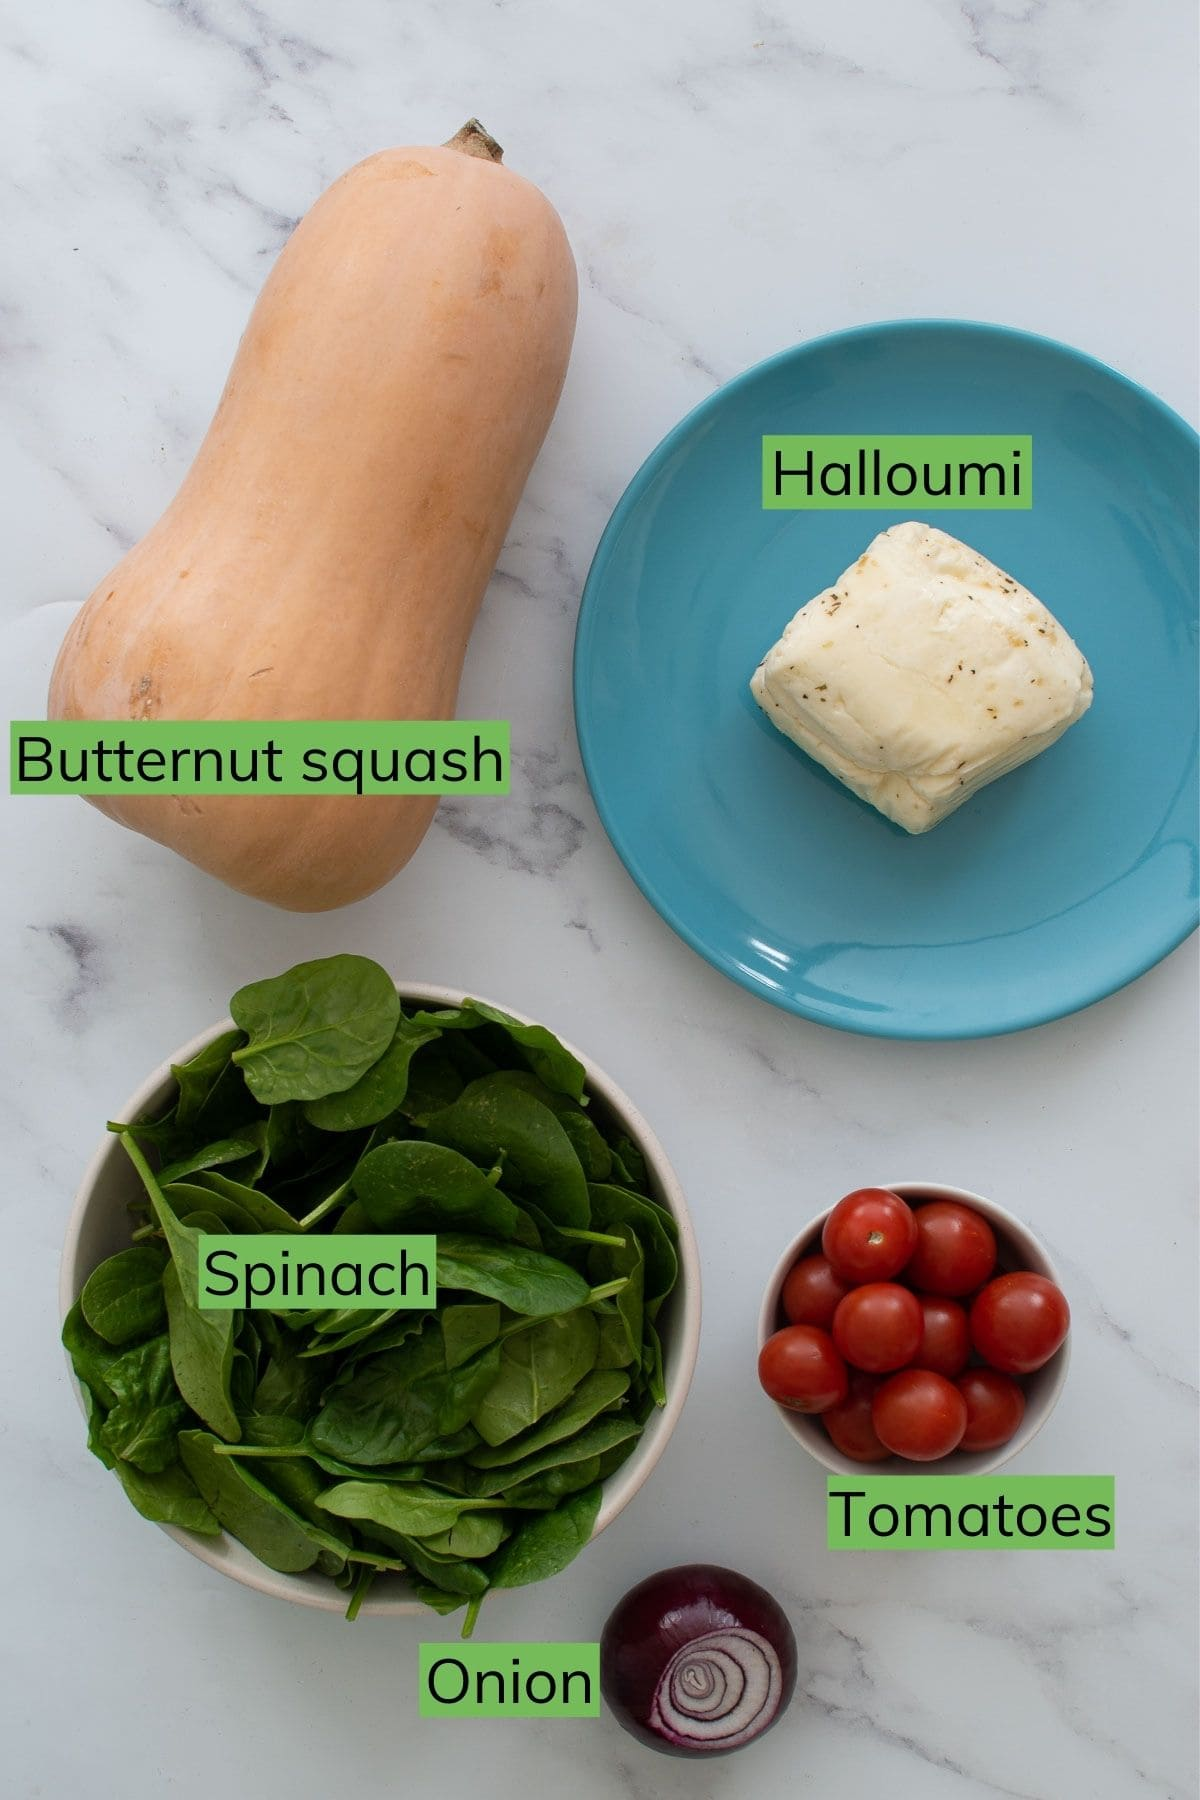 Ingredients for halloumi salad with butternut squash, spinach and tomatoes.